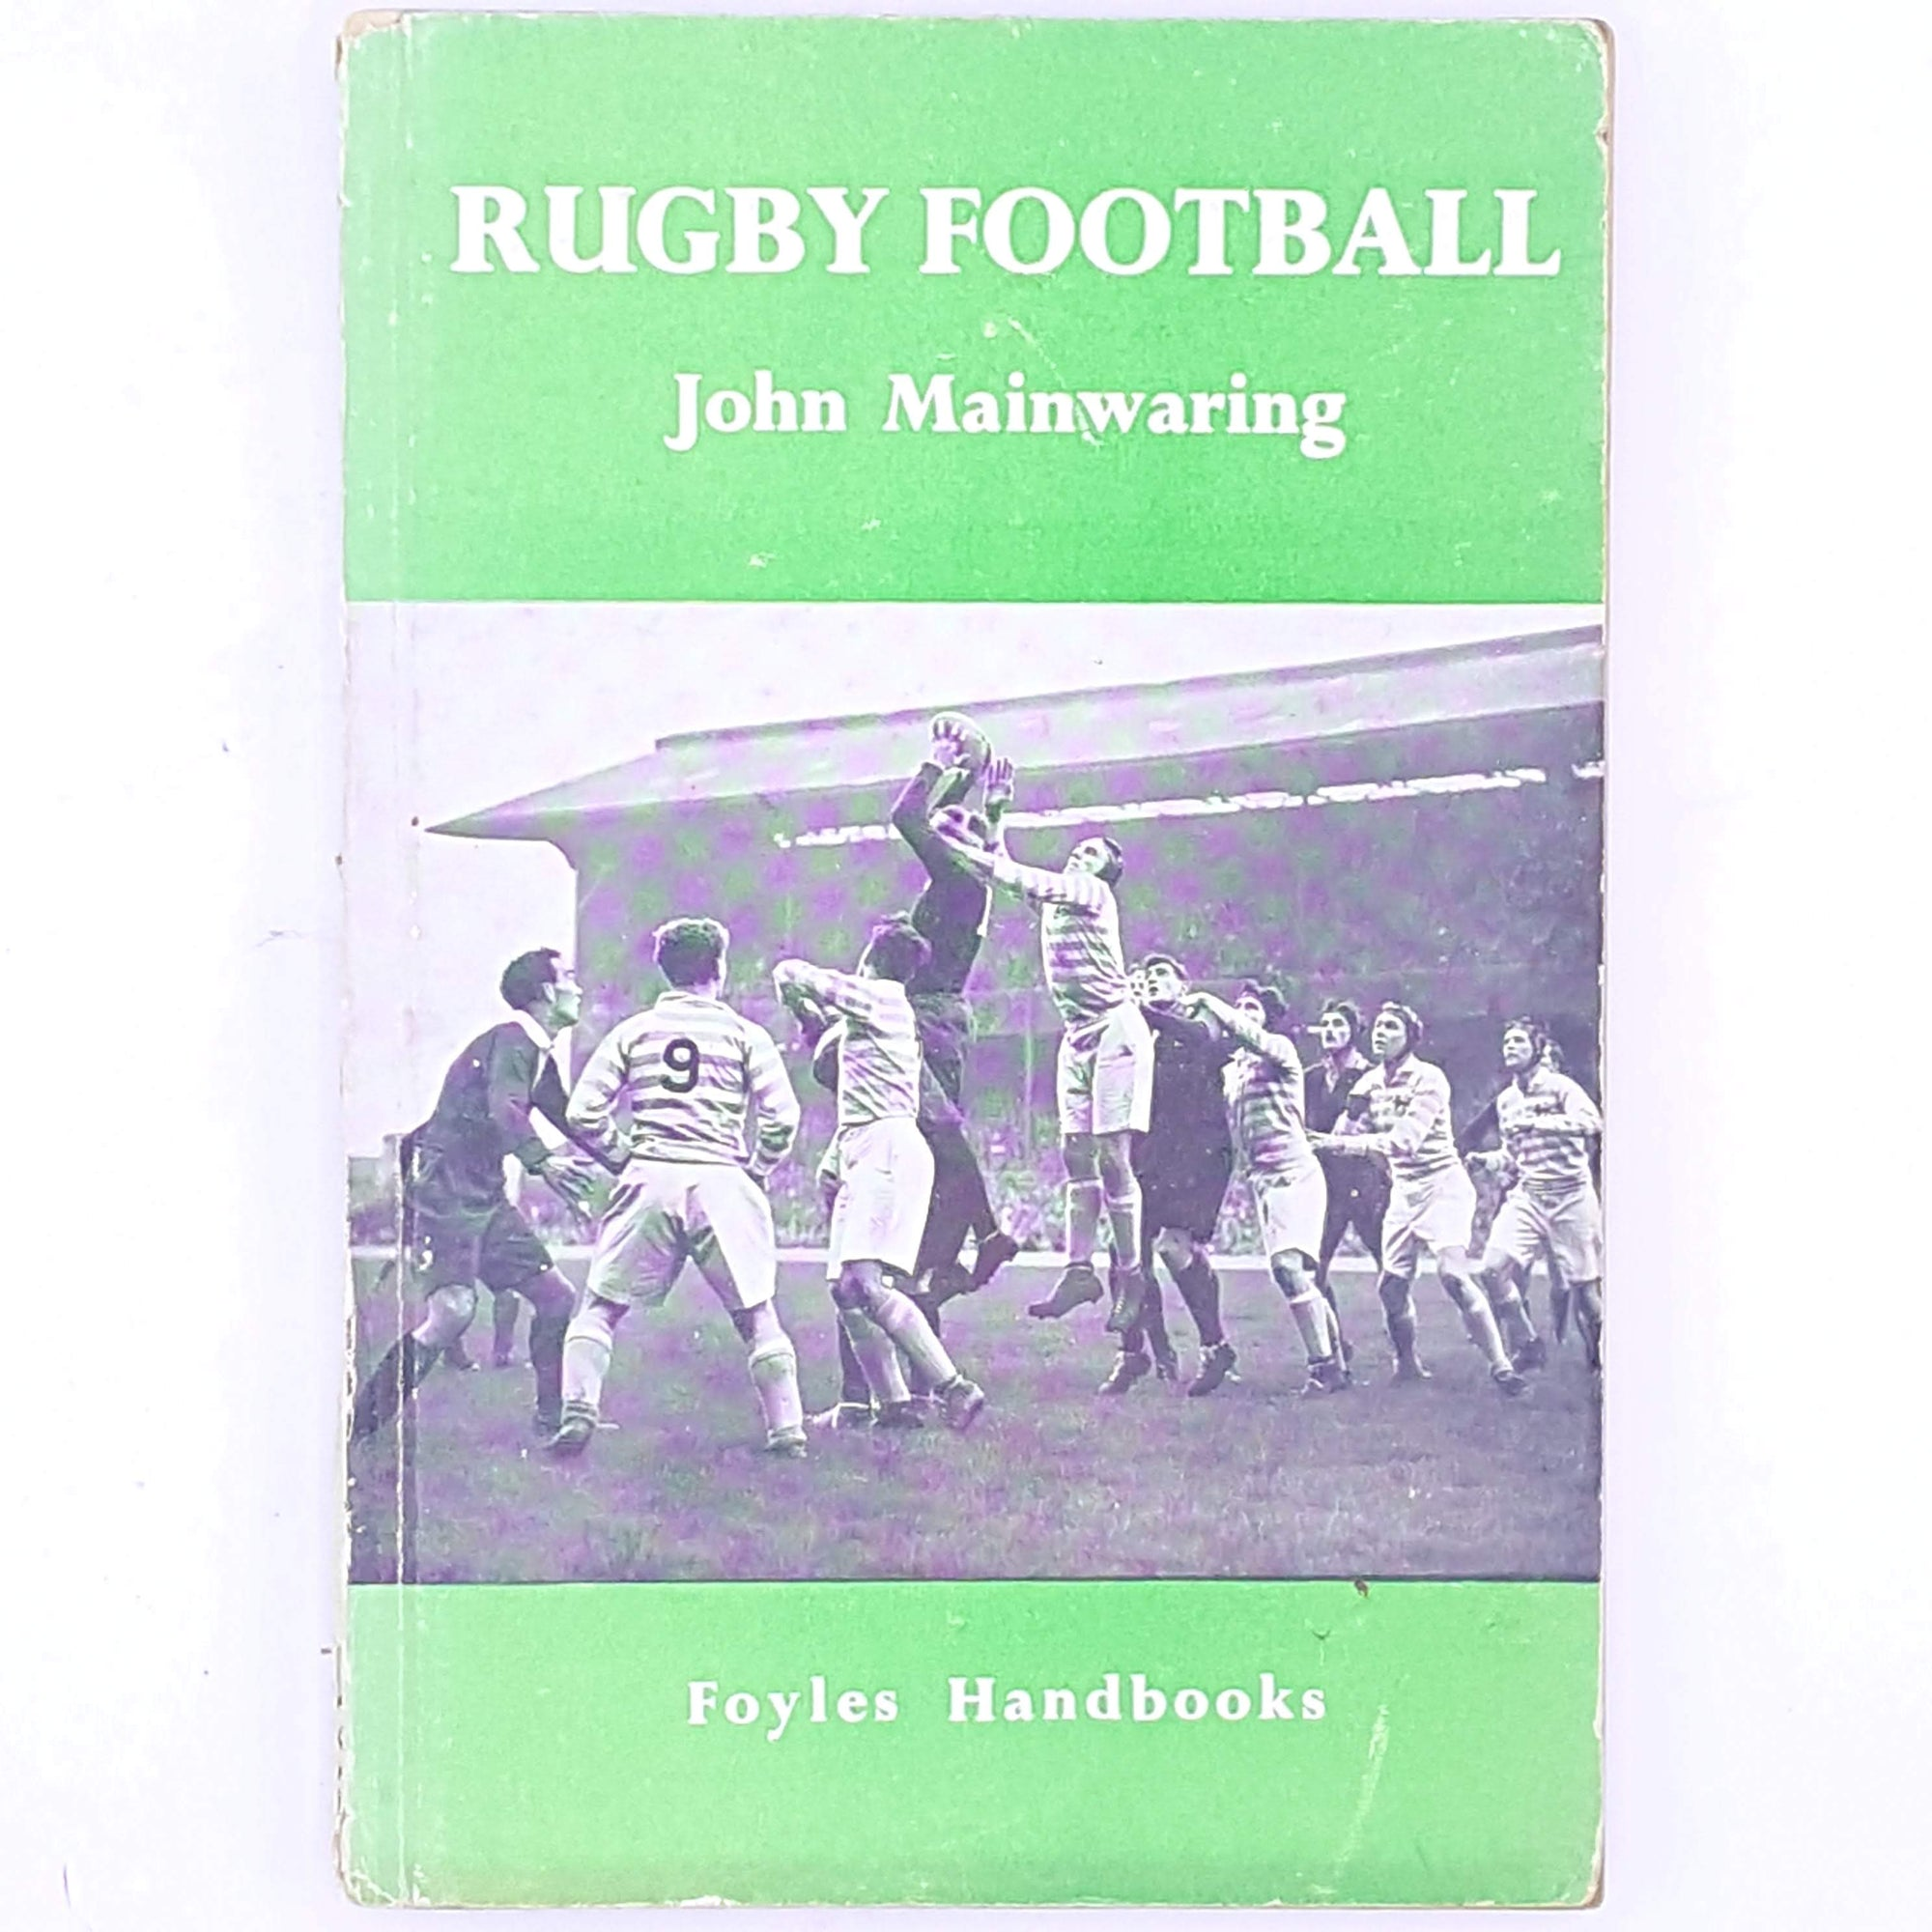 classic-thrift-rugby-vintage-christmas-gifts-football-books-country-house-library-decorative-old-for-him-rugby-footballpatterned-sport-antique-for-sports-fans-